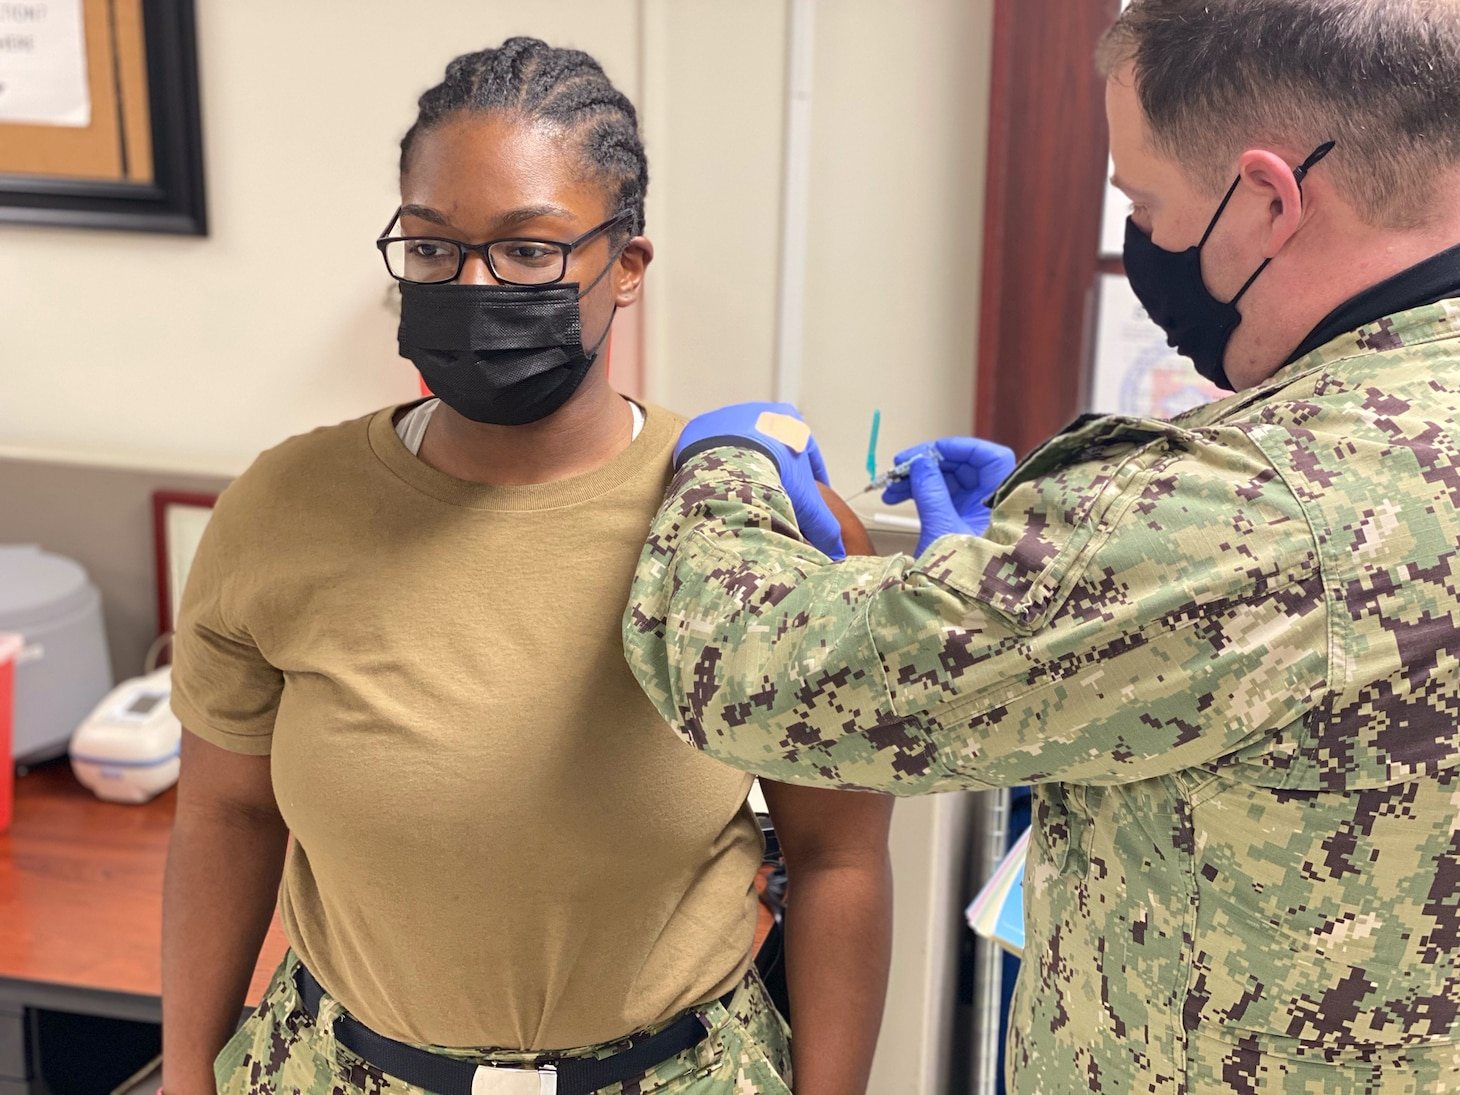 LITTLE ROCK, Arkansas (Jan. 9, 2021) - Logistics Specialist 3rd Class Jhashaira Farmer, a Selected Reservist (SELRES) Sailor, receives the influenza vaccination administered by Hospital Corpsman 2nd Class Randall Busby, a Medical department representative at Navy Operations Support Center Little Rock during the command's first drill weekend of the year. NOSC Little Rock coordinated mission-essential training and readiness events for more than 148 SELRES Sailors during the drill weekend, which was tailored to provide a more streamlined approach to warfighting readiness in accordance with the Chief of Navy Reserve's recently released Fighting Instructions. (U.S. Navy photo taken by Electronics Technician 1st Class Stephen Landry/Released)